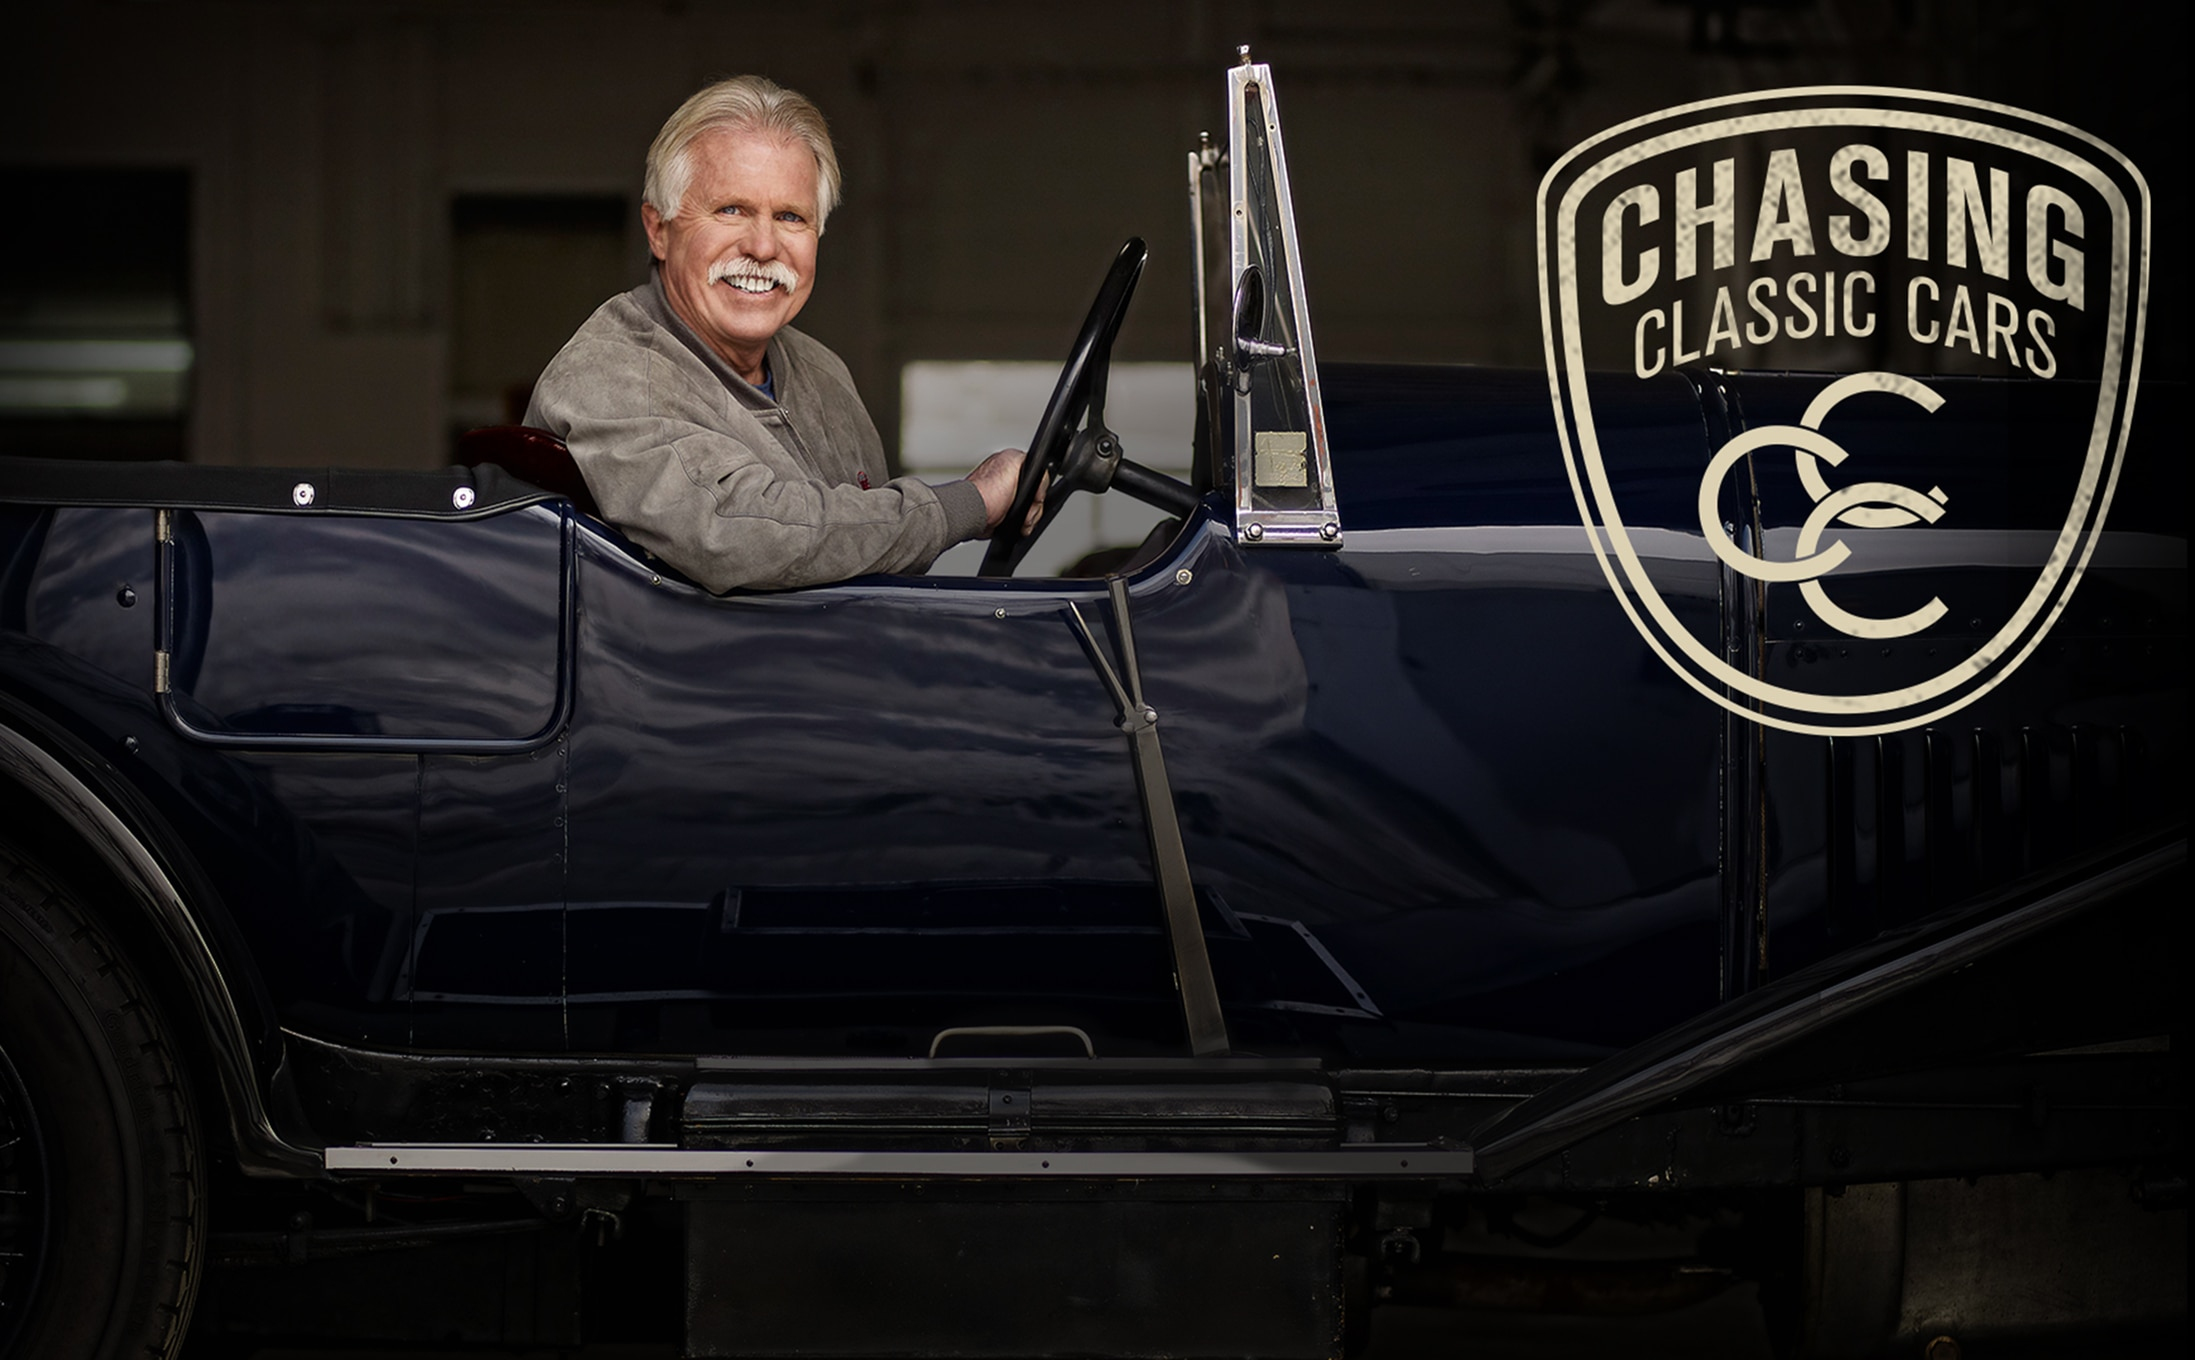 Tune In To Chasing Classic Cars And More On Motor Trend